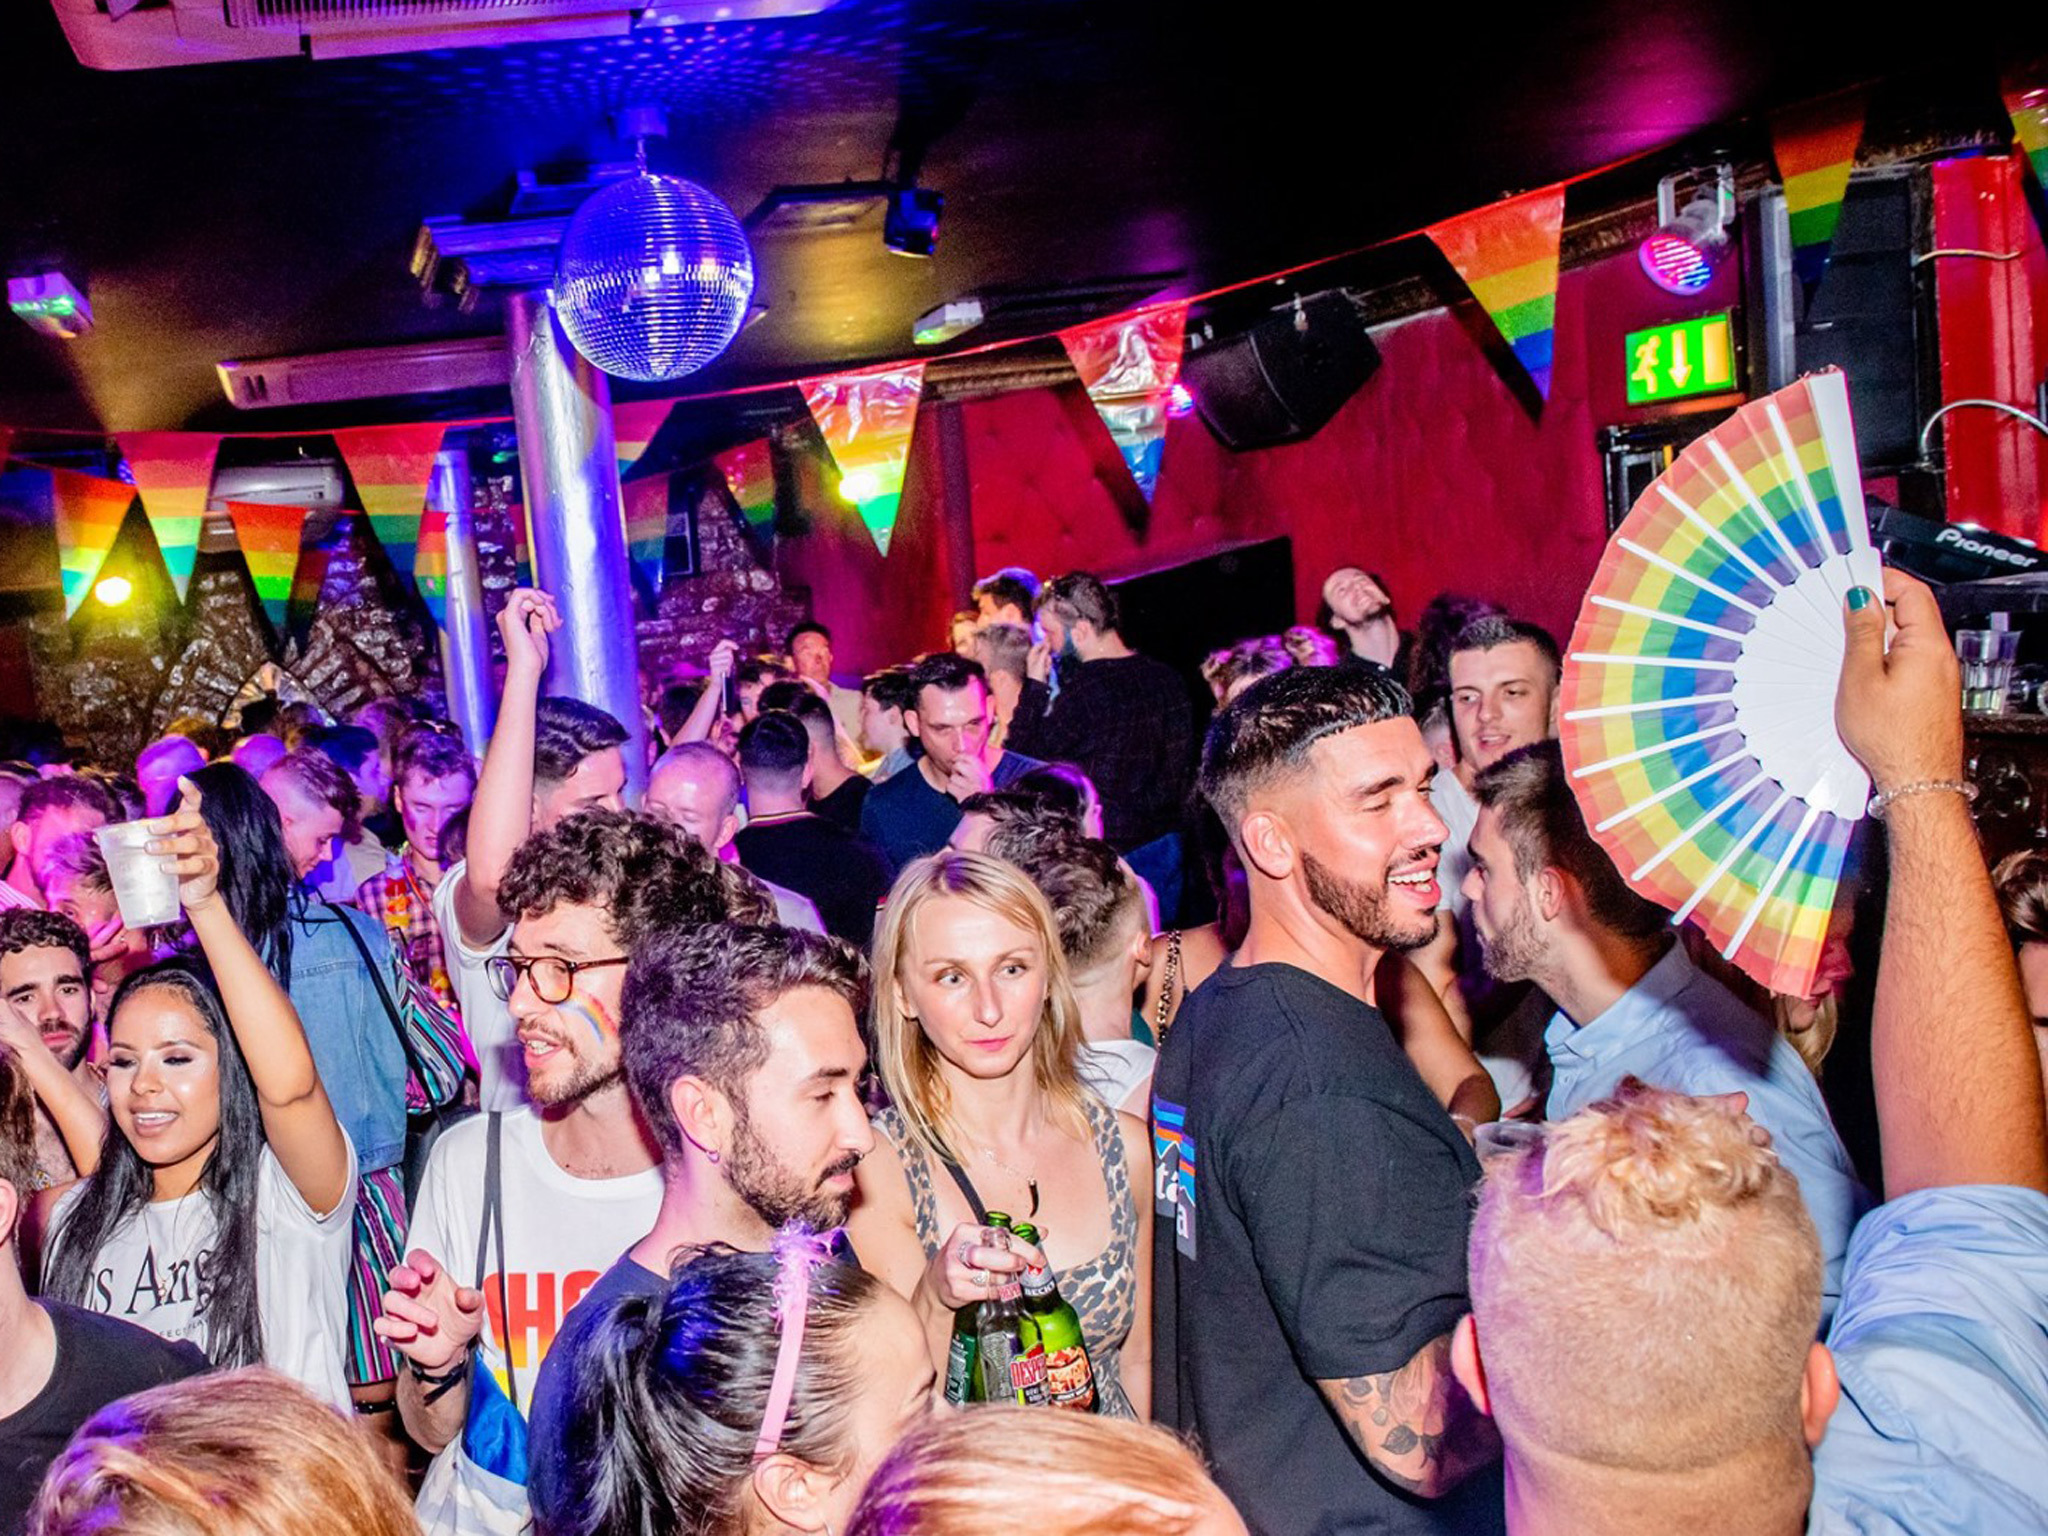 A crowd at GBar in Liverpool